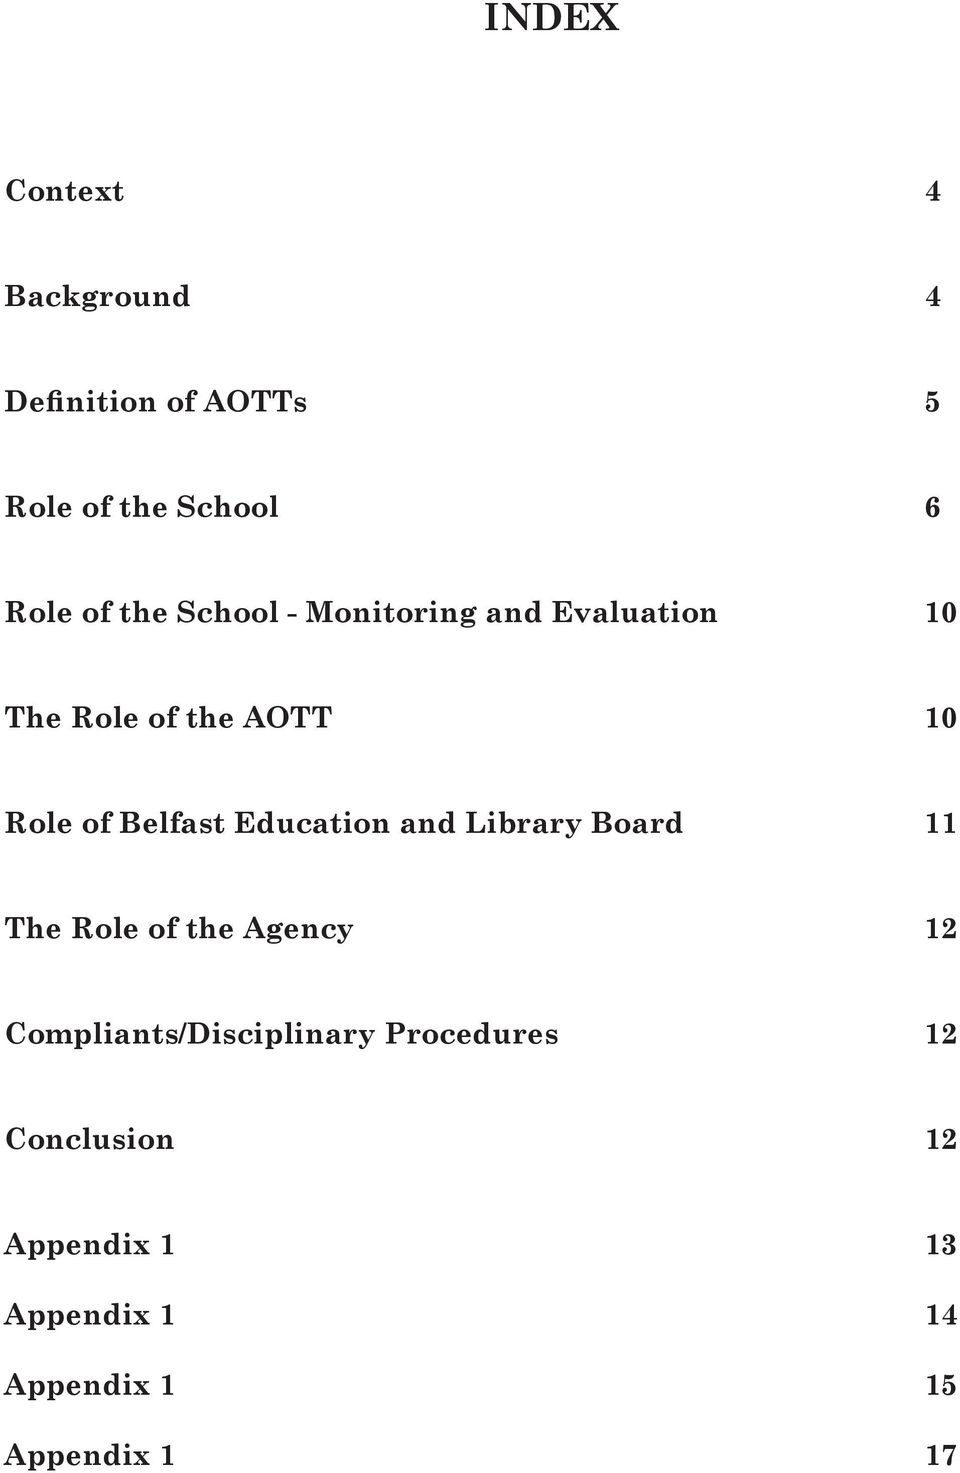 Education and Library Board 11 The Role of the Agency 12 Compliants/Disciplinary